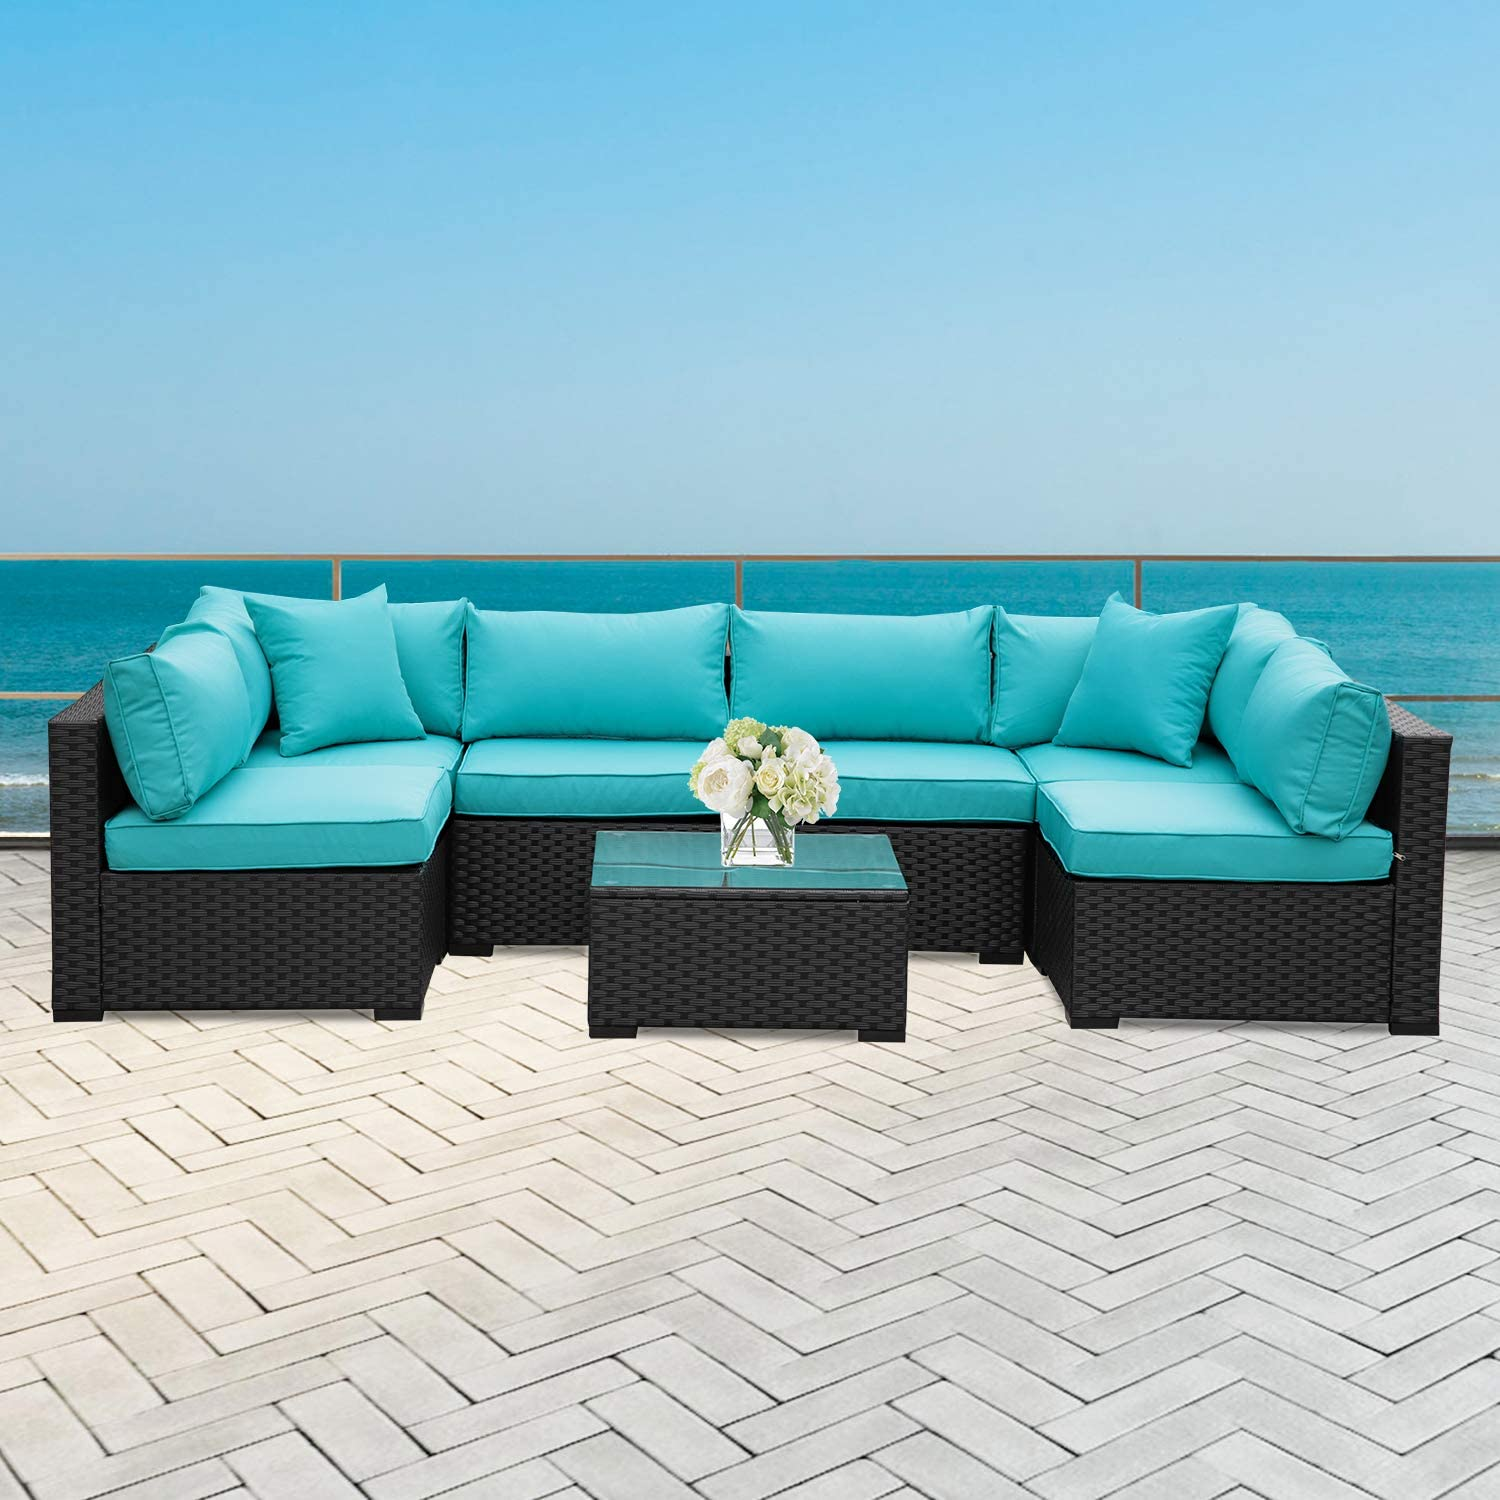 7 Piece Outdoor PE Wicker Furniture Set, Patio Black Rattan Sectional Sofa Couch with Washable Turquoise Cushions